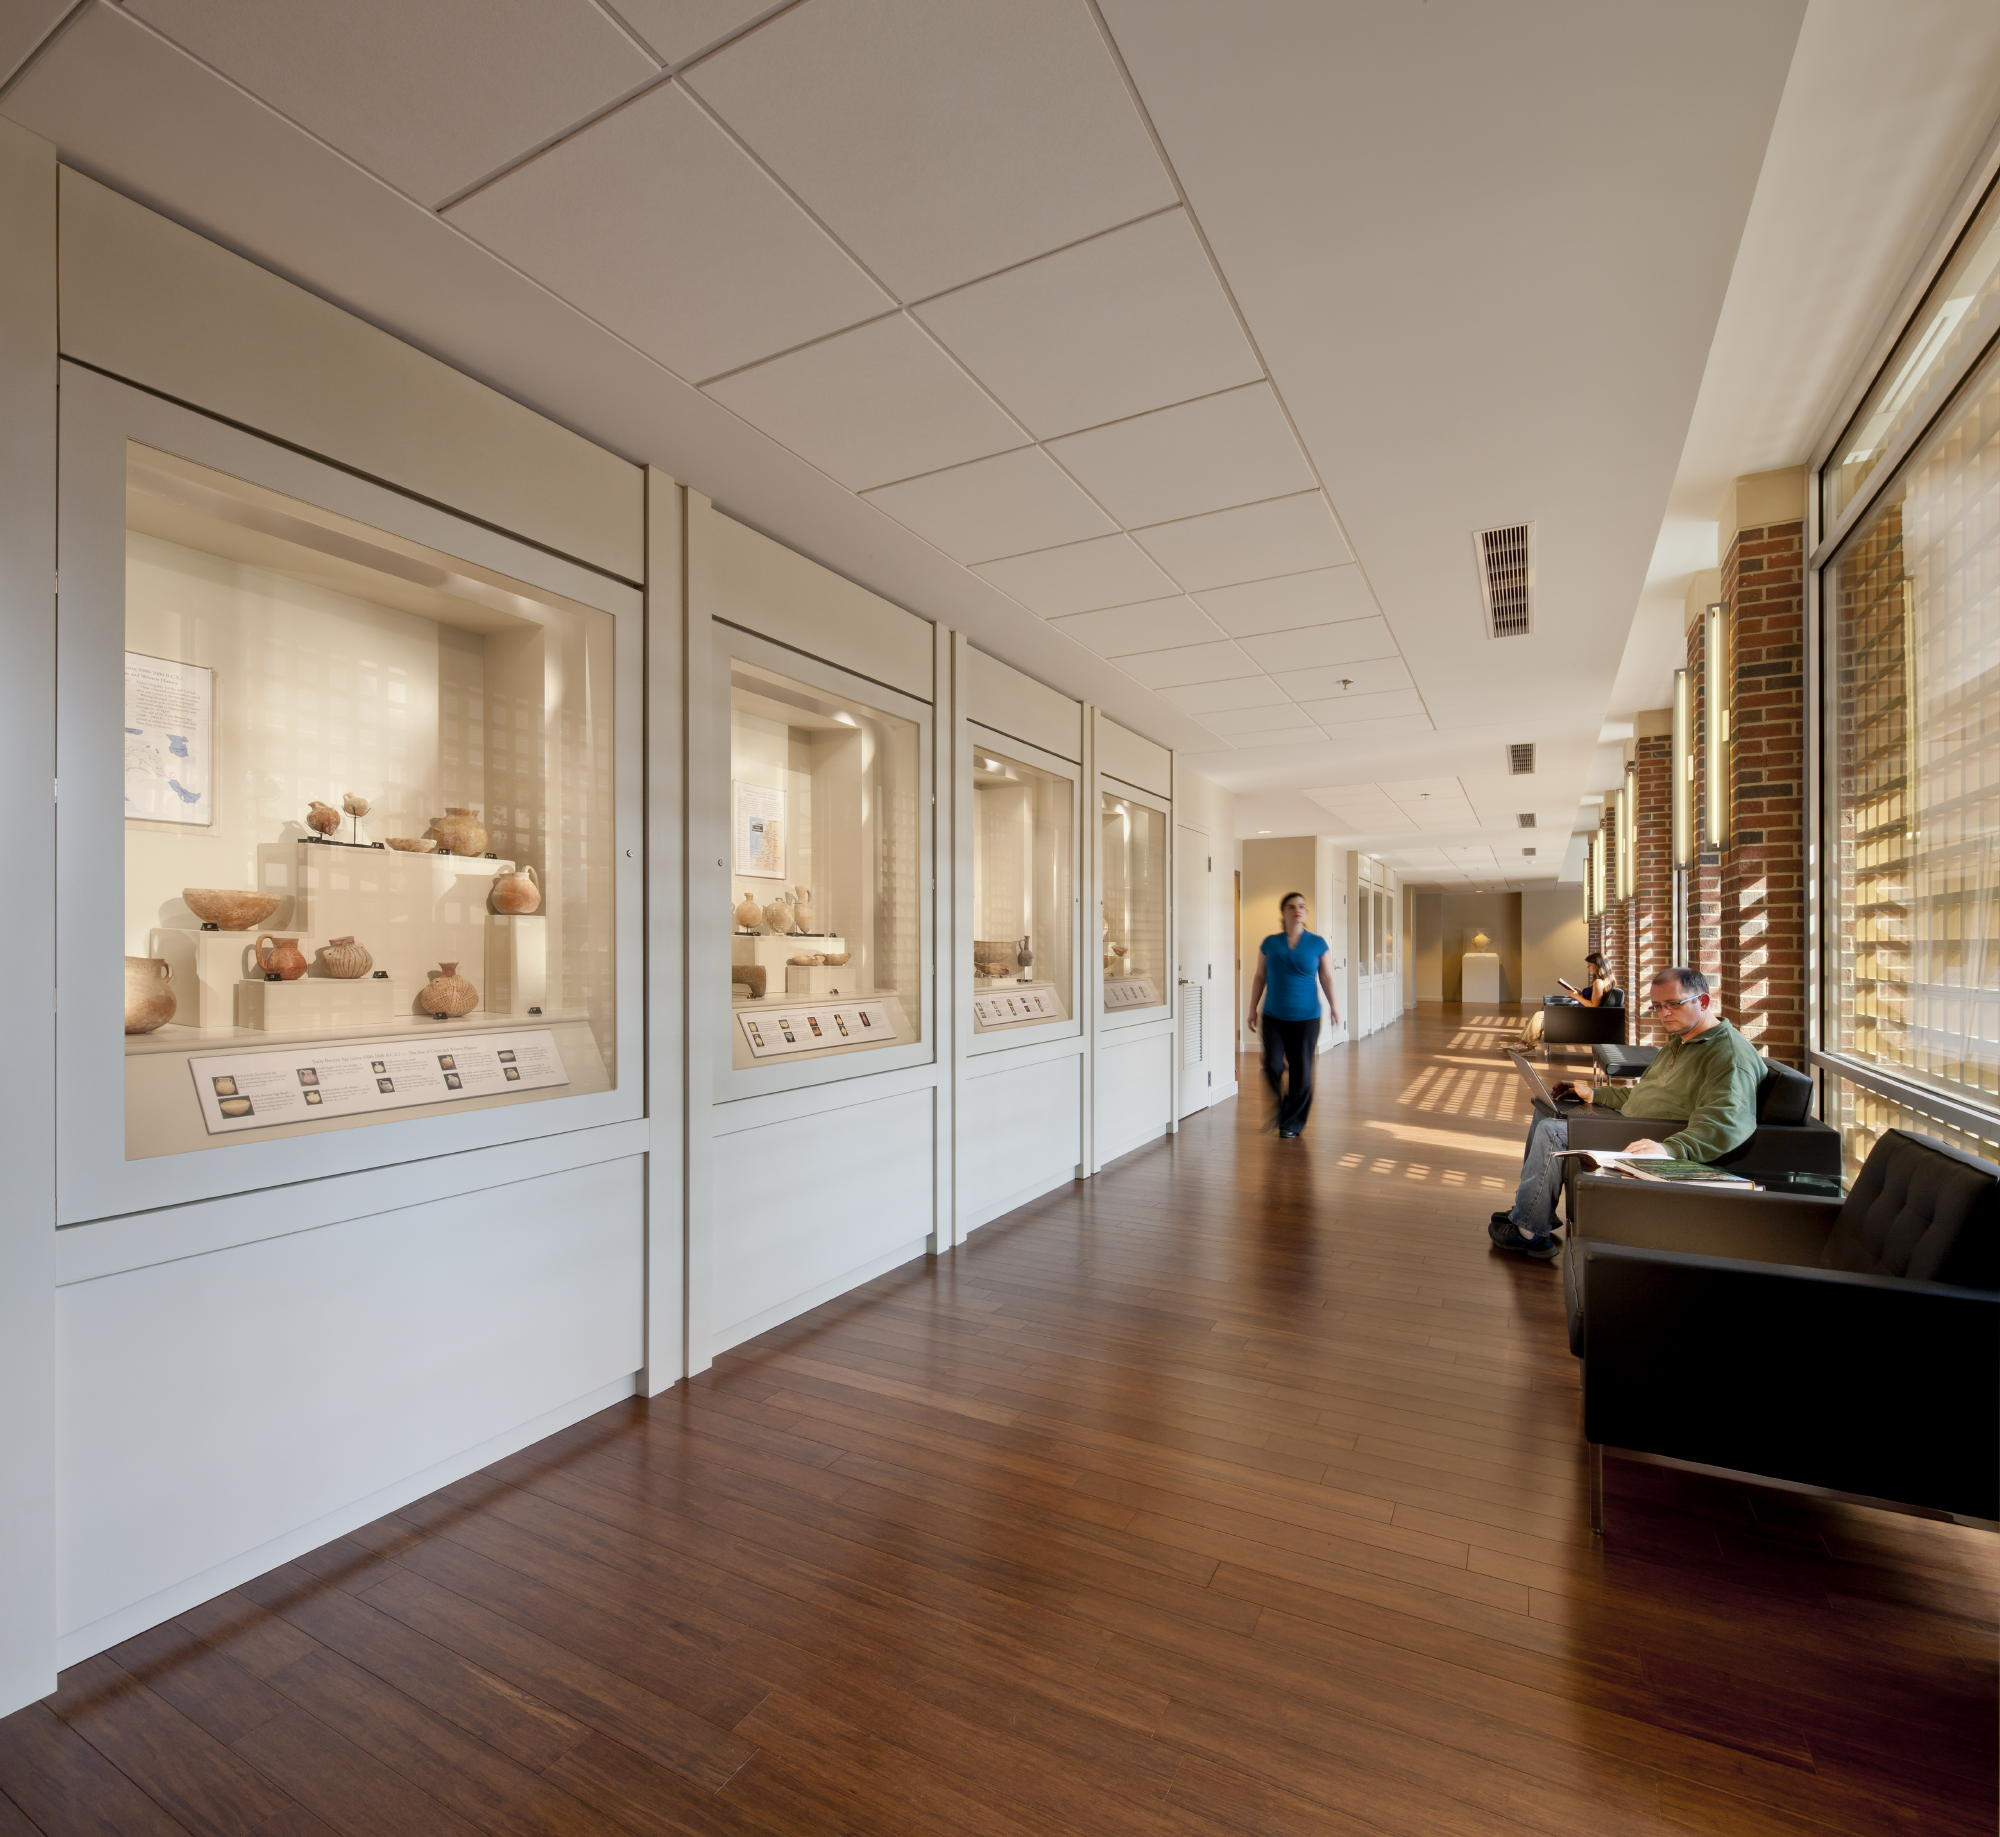 A circulation concourse in one of the new classroom wings doubles as a museum-quality gallery for display of a collection of Biblical antiquities. The artifacts are integrated into the students' educational curriculum. c 2012 Jonathan Hillyer / Atlanta